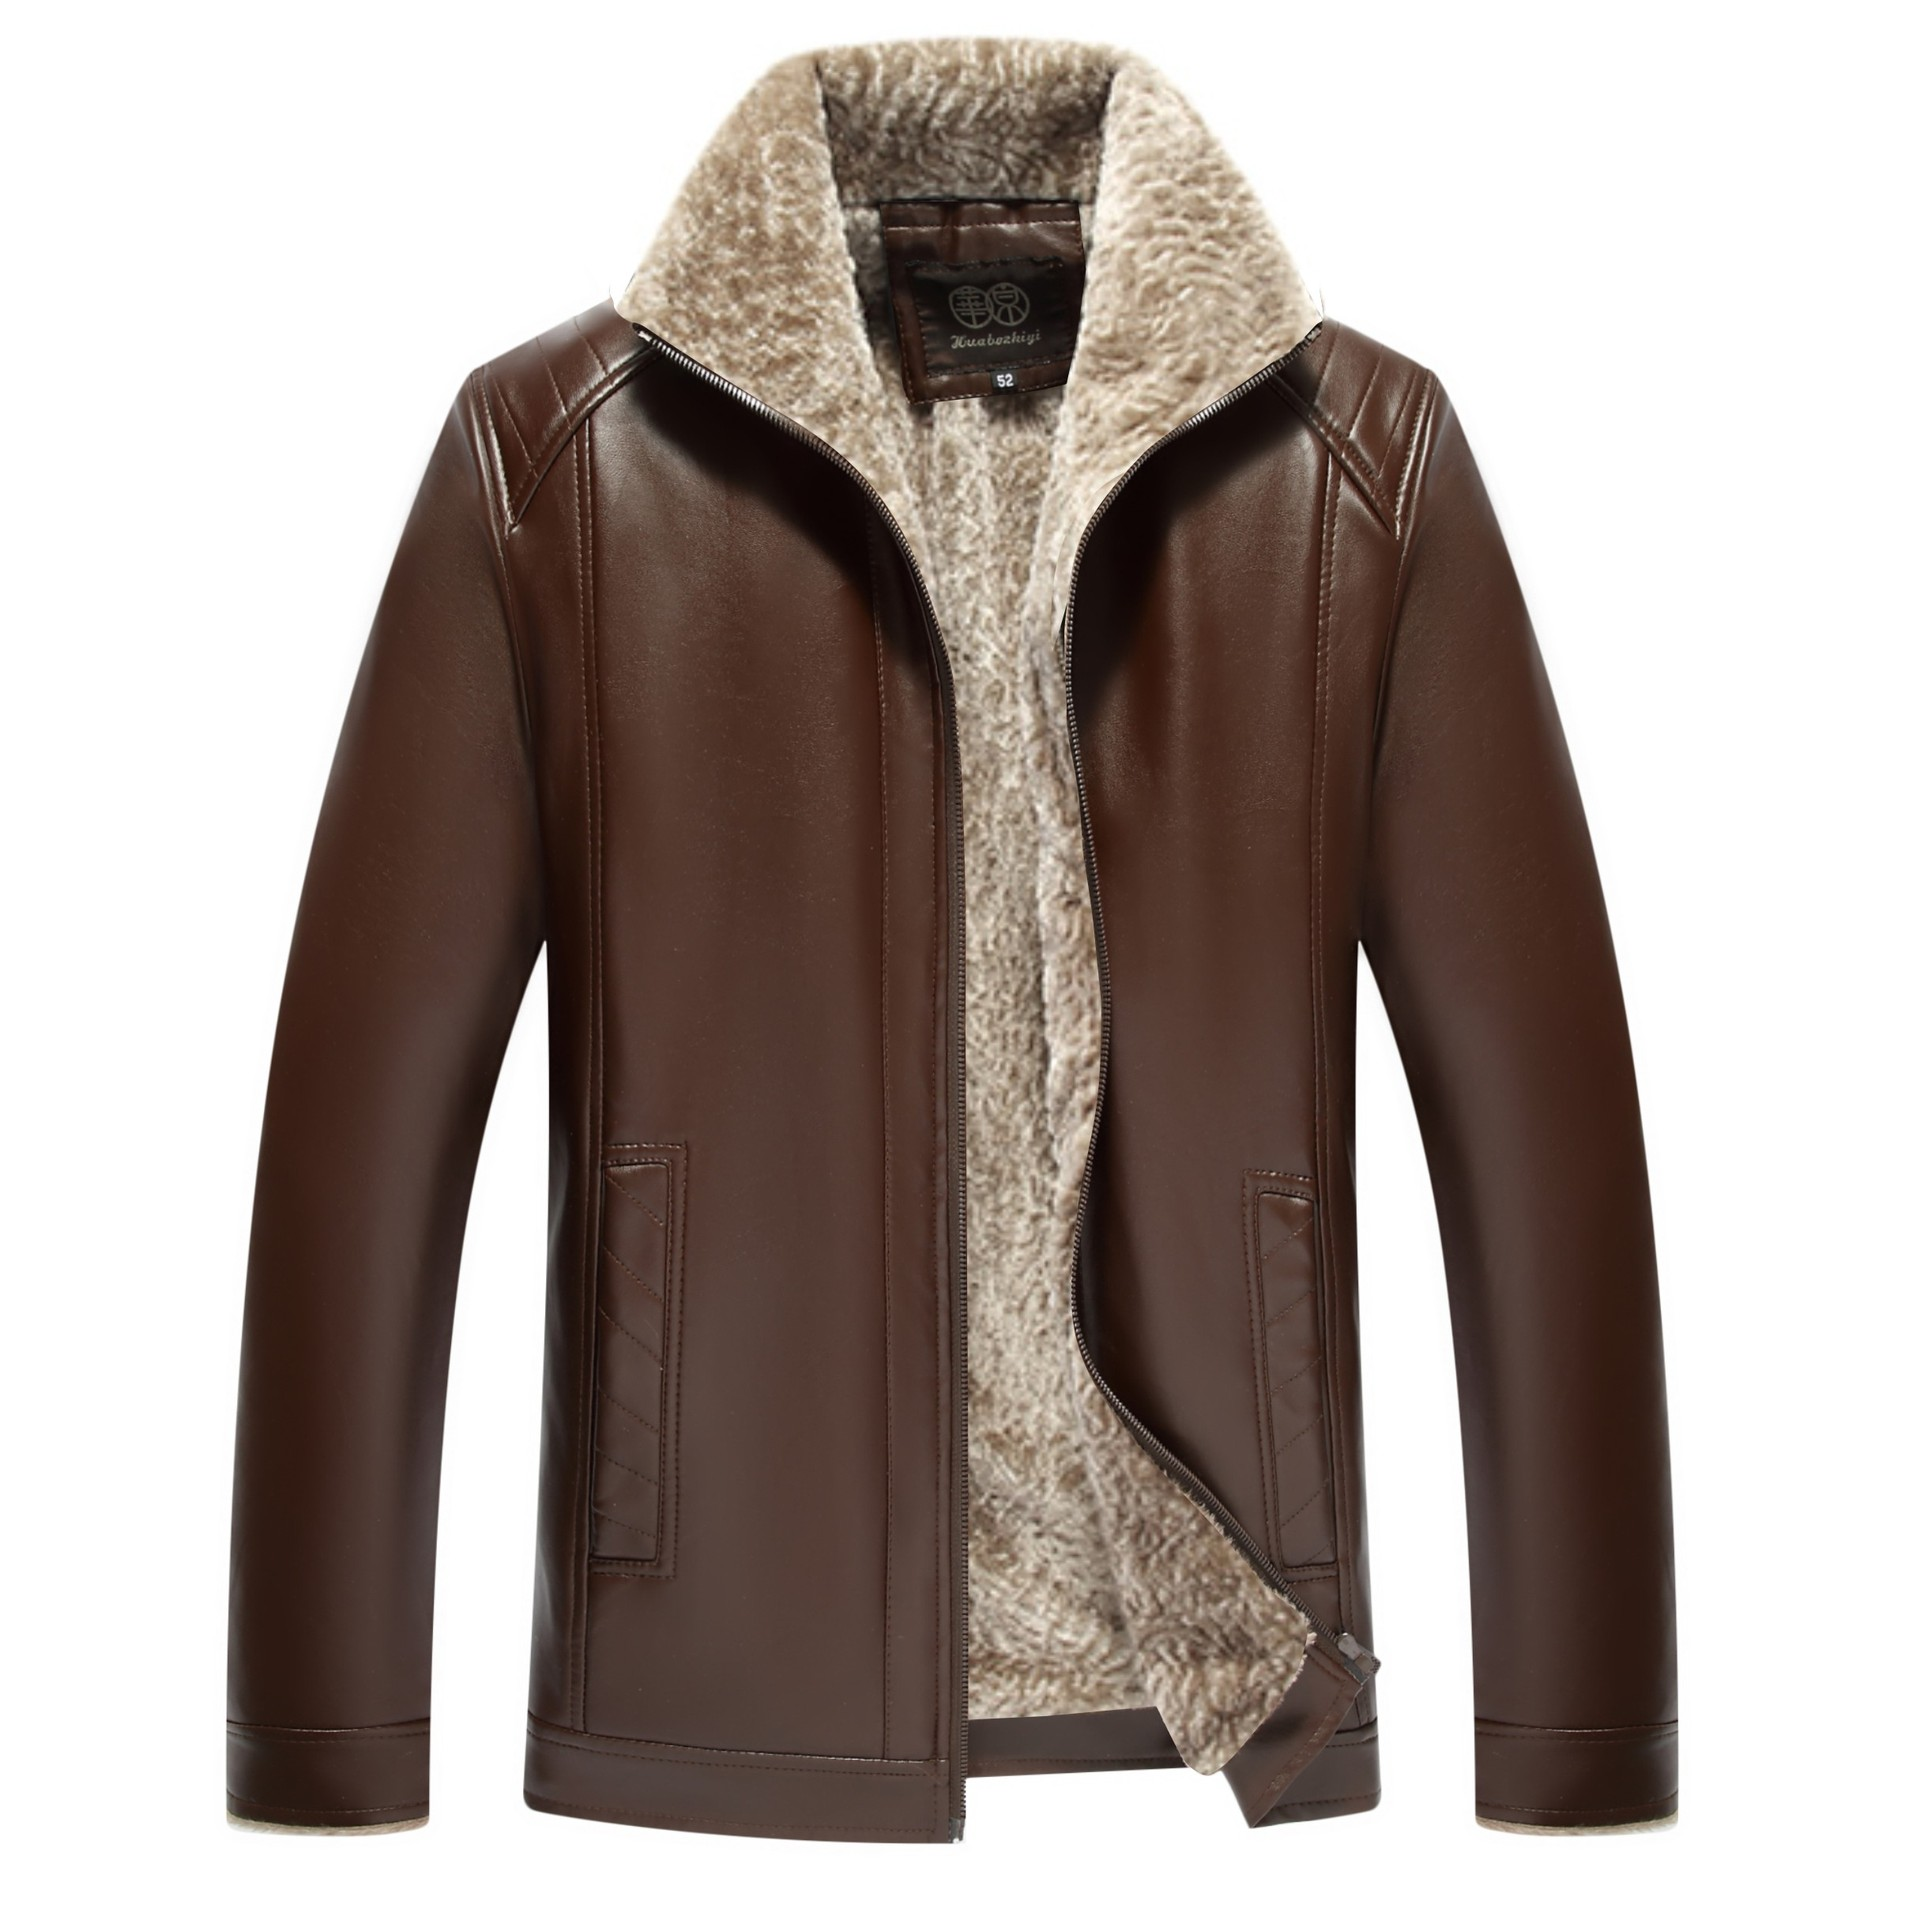 Men Leather Jackets Winter Male PU Coats Flocking Fur Coat Boy Winter Outerwear 50 52 54 56 58 60